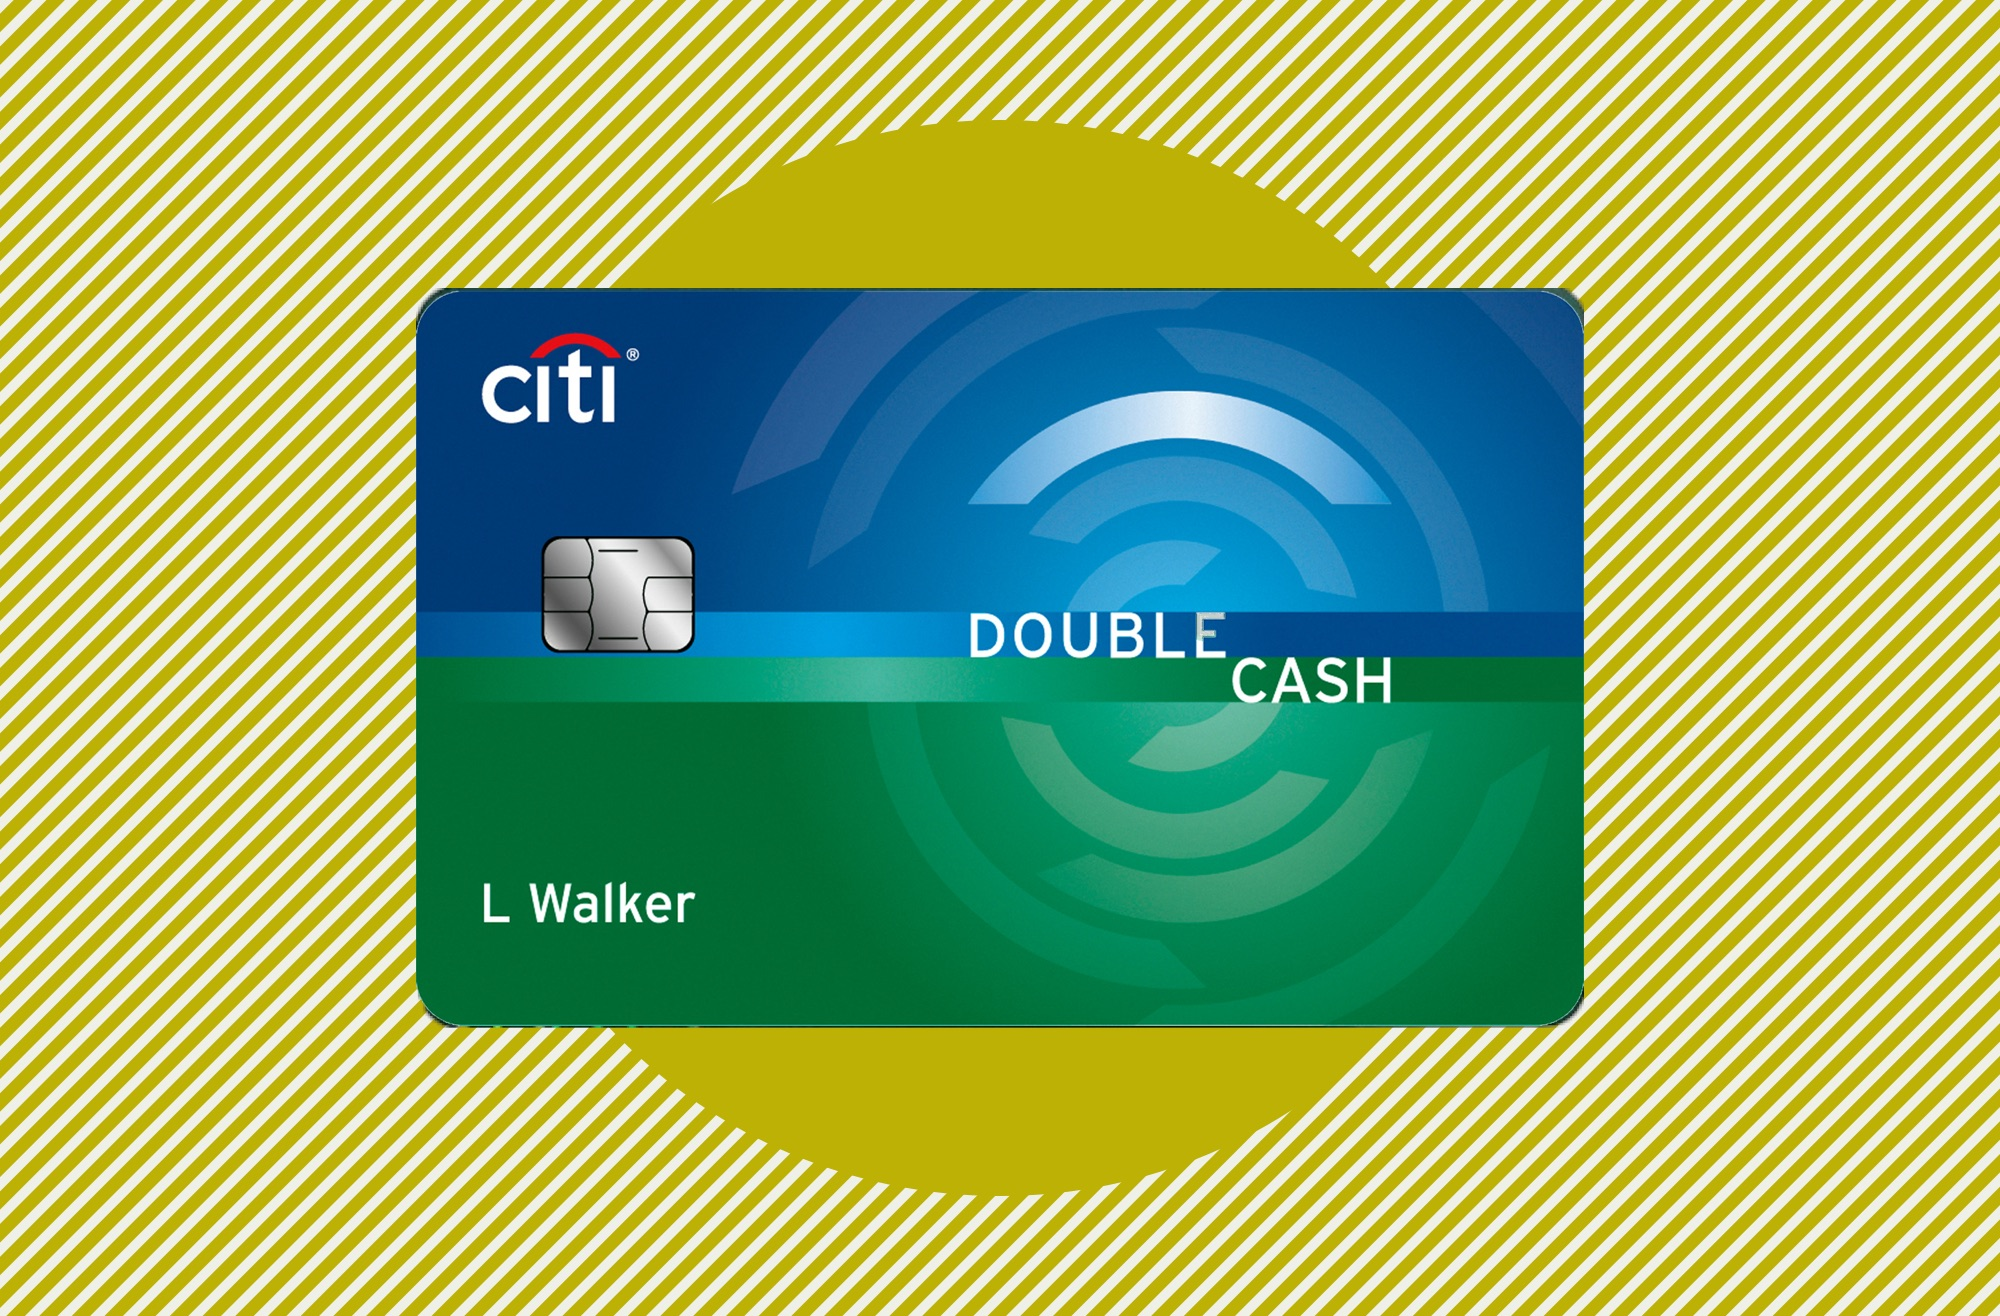 Photo to accompany Citi Double Cash Card Review